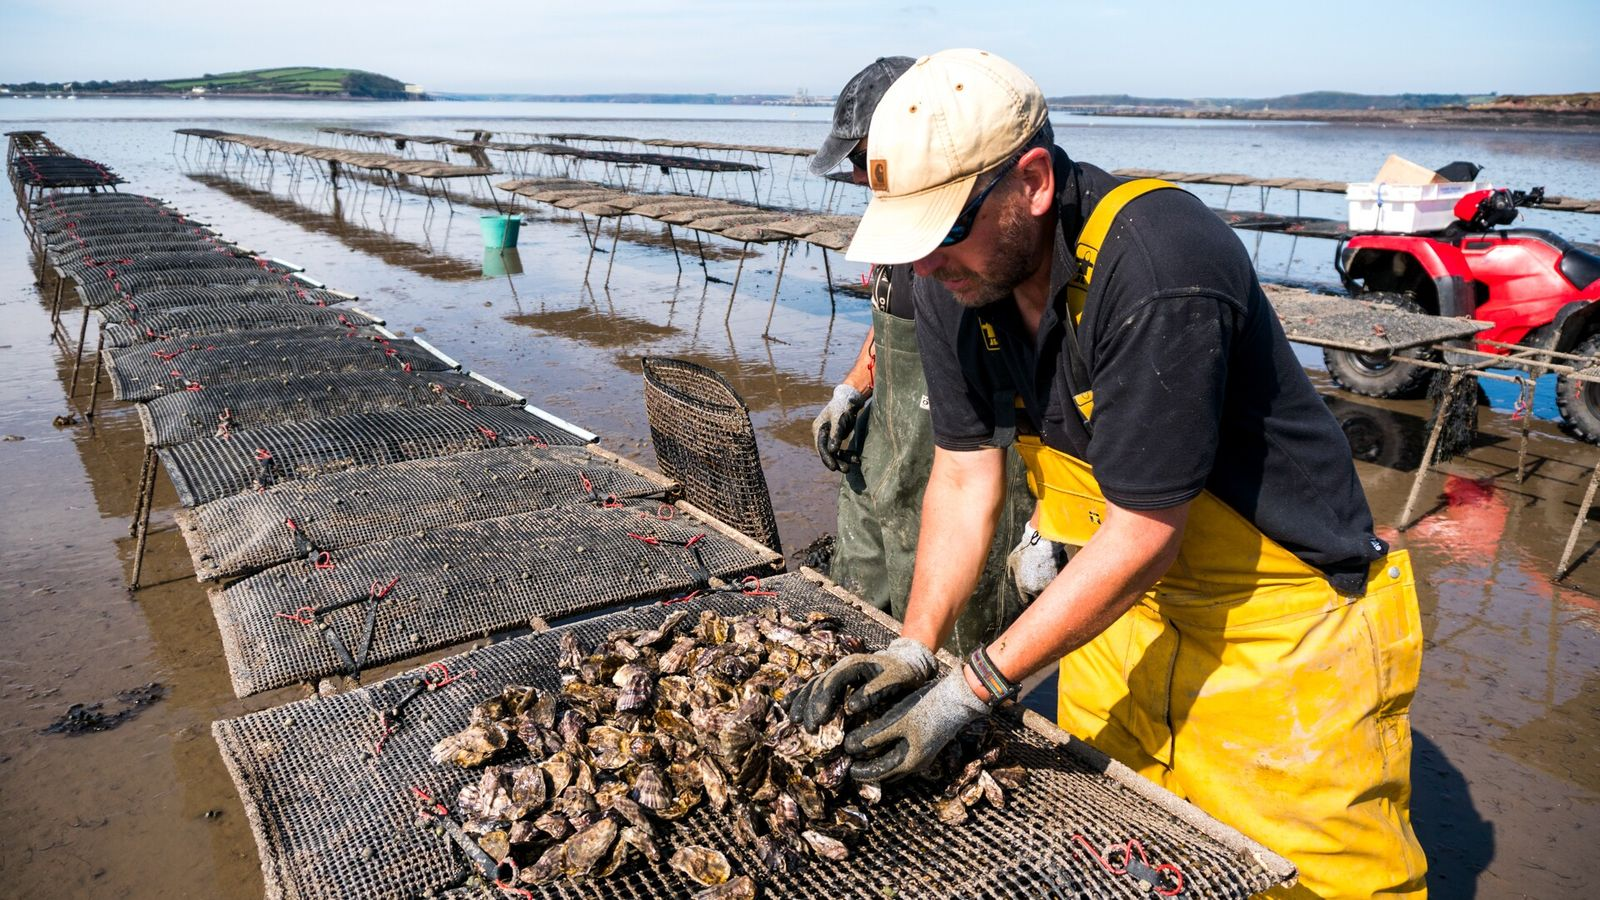 Andy Woolmer, owner of Atlantic Edge Oysters, believes that shellfish delivers in terms of taste, health, ...